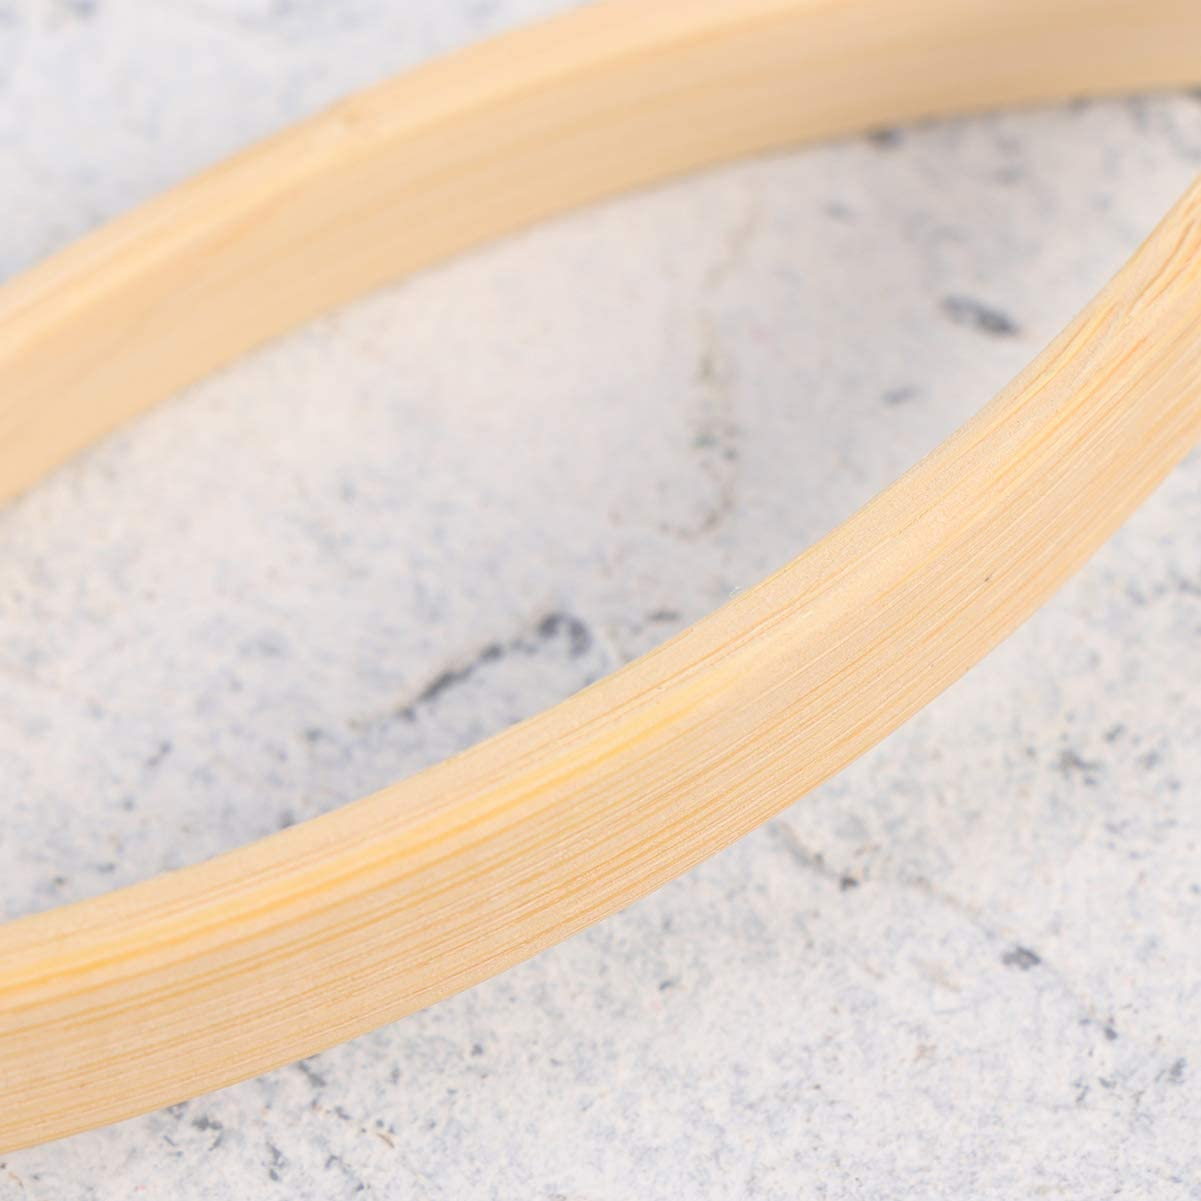 HEALLILY Dream Catcher Ring Bamboo Hoops Wooden Ring Circles for DIY Craft Dream Catcher Making Accessaries 15cm 2Pcs